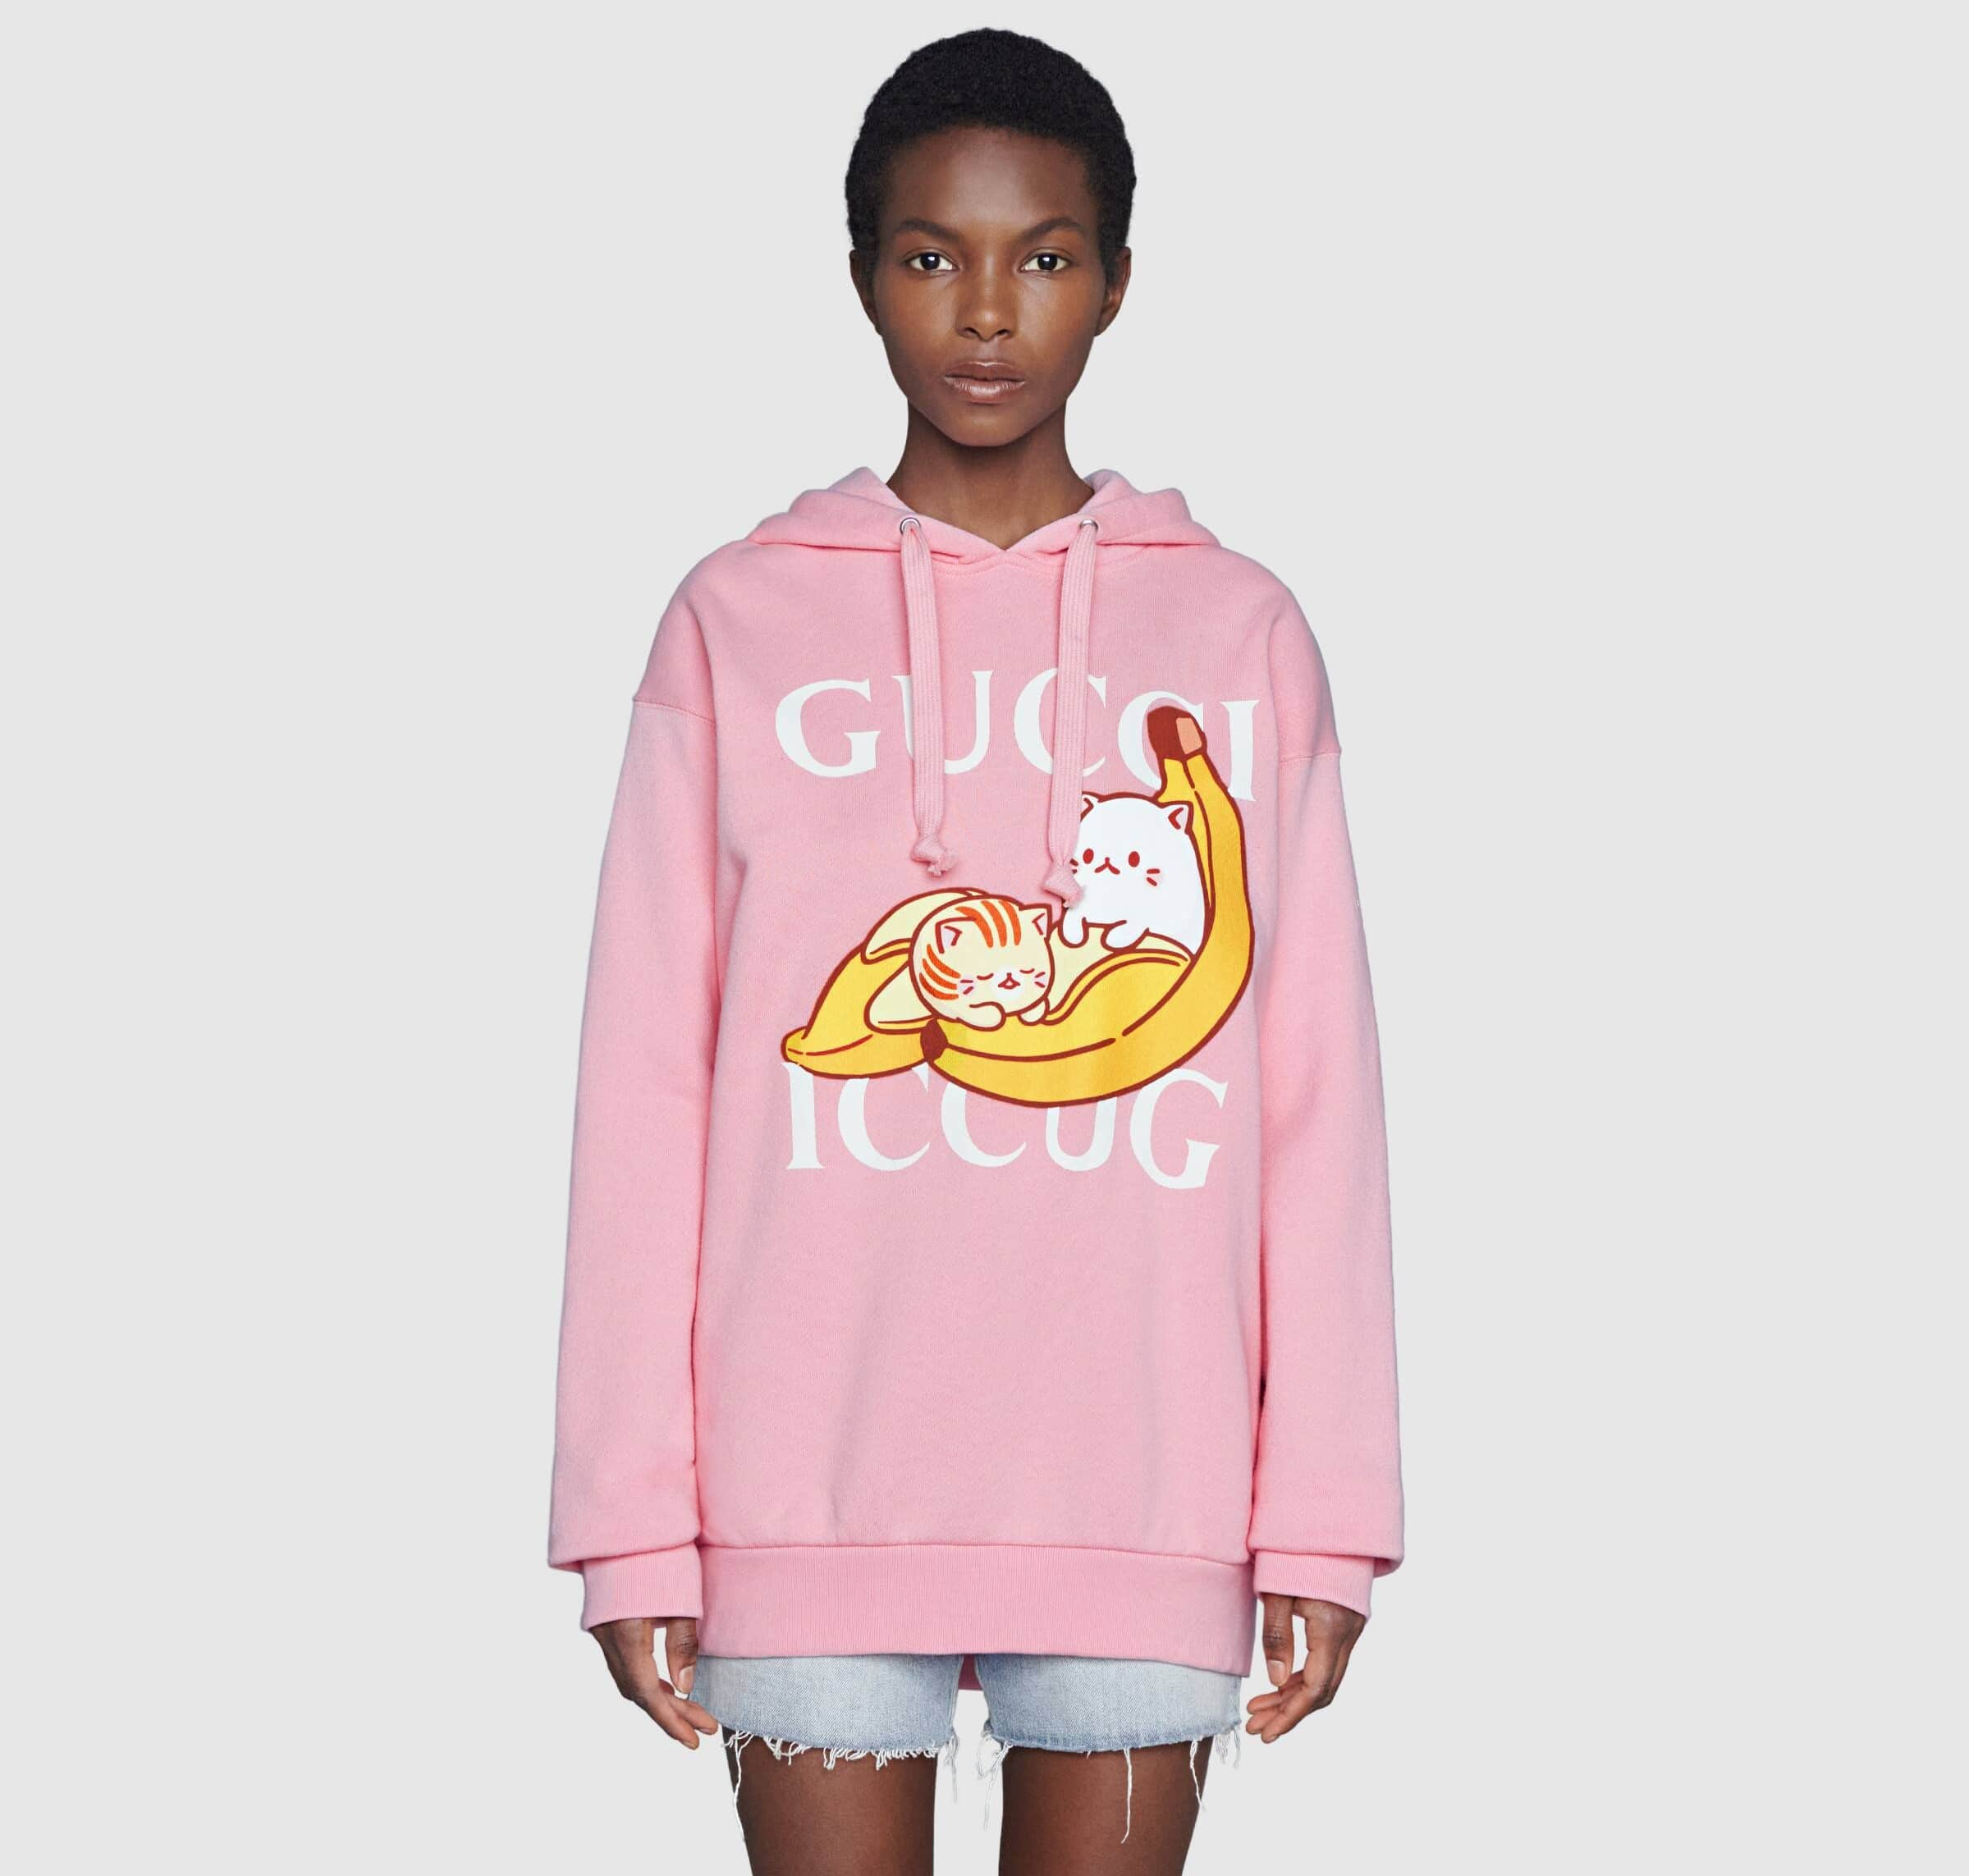 Gucci and Crunchyroll team up for a Bananya capsule collection 19